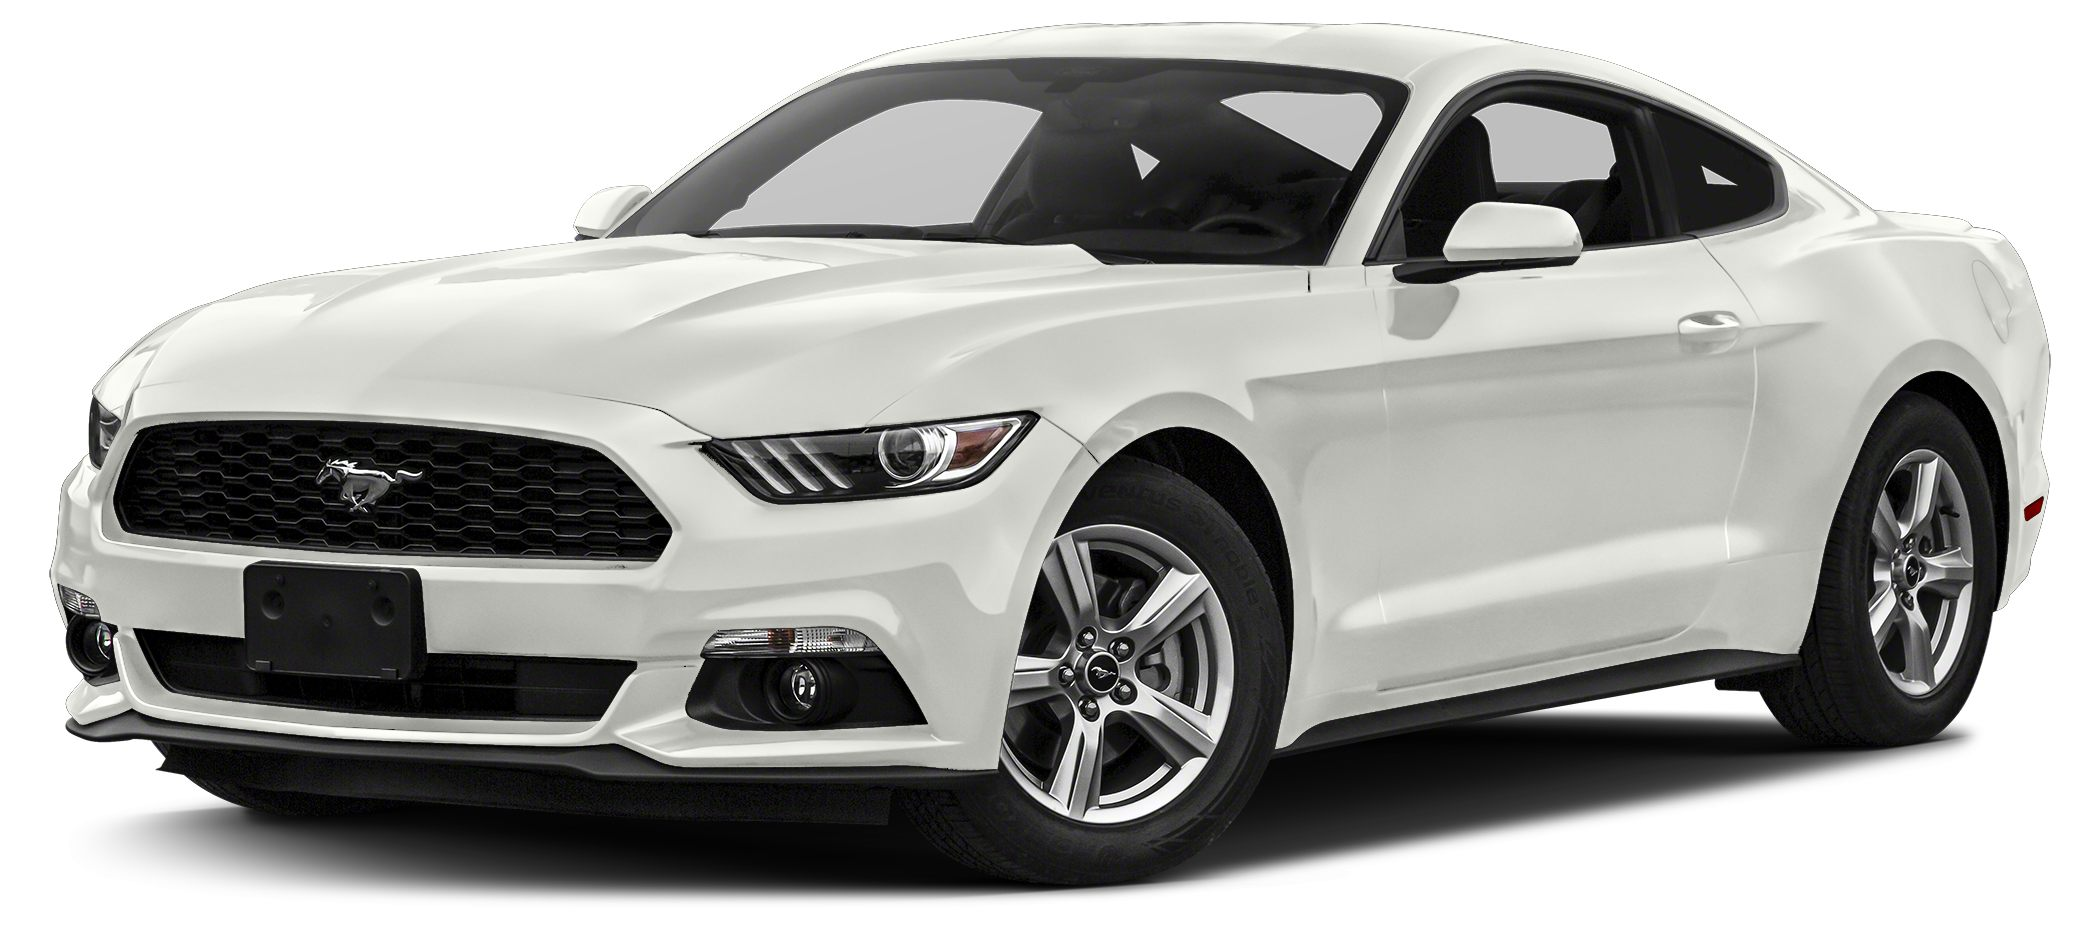 2017 Ford Mustang V6 The Ford Mustang is an American classic that lives on The body has been desi